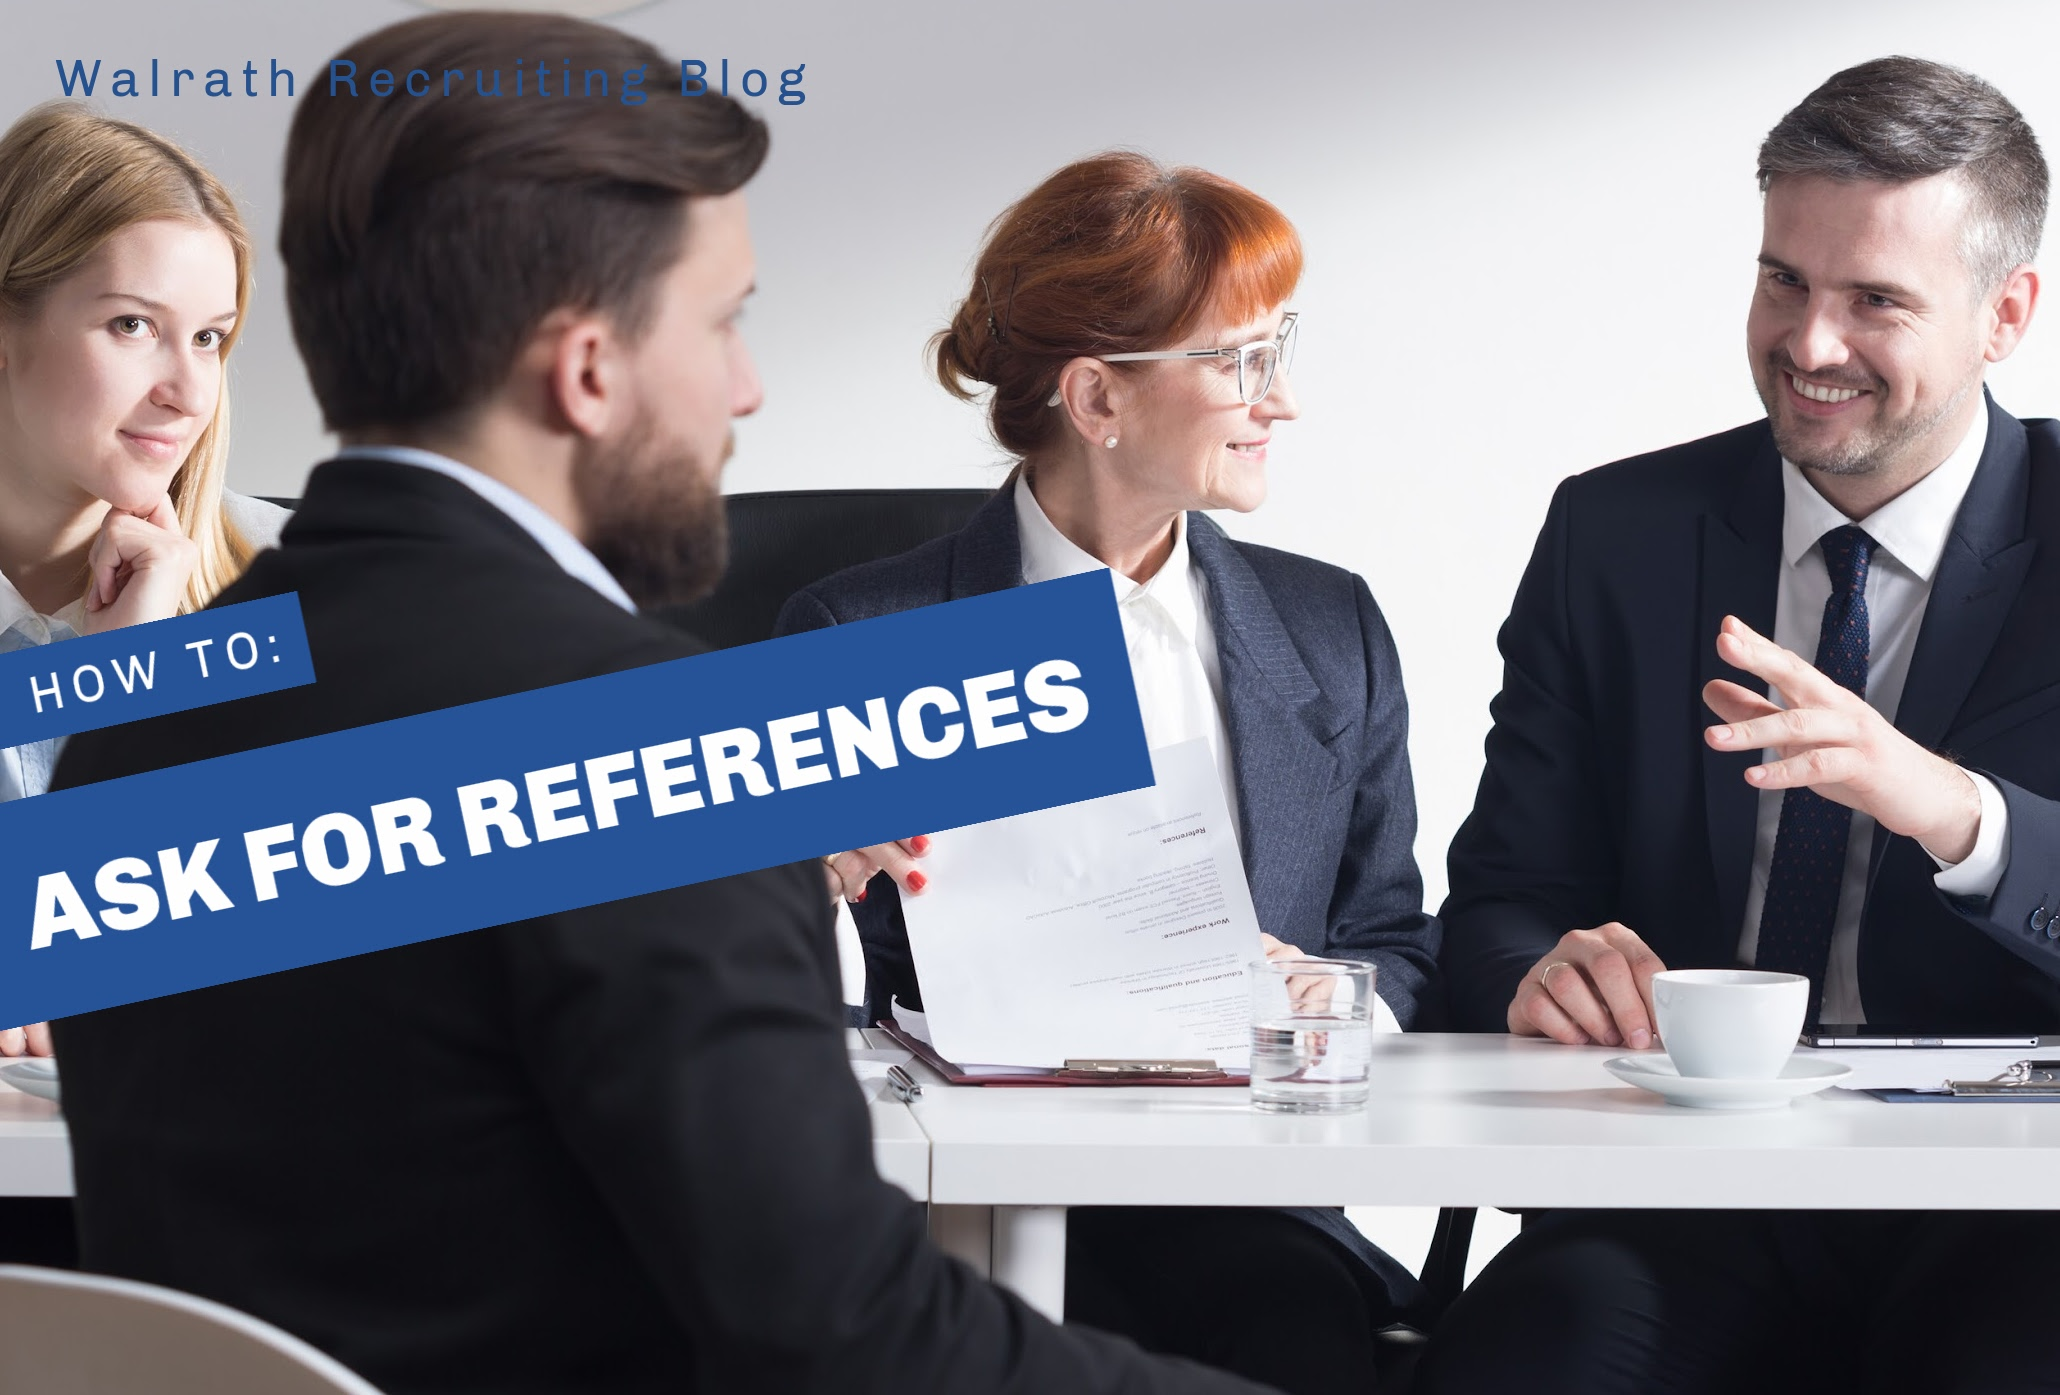 References are a key factor when job hunting. Find out how, and who, to ask for references.